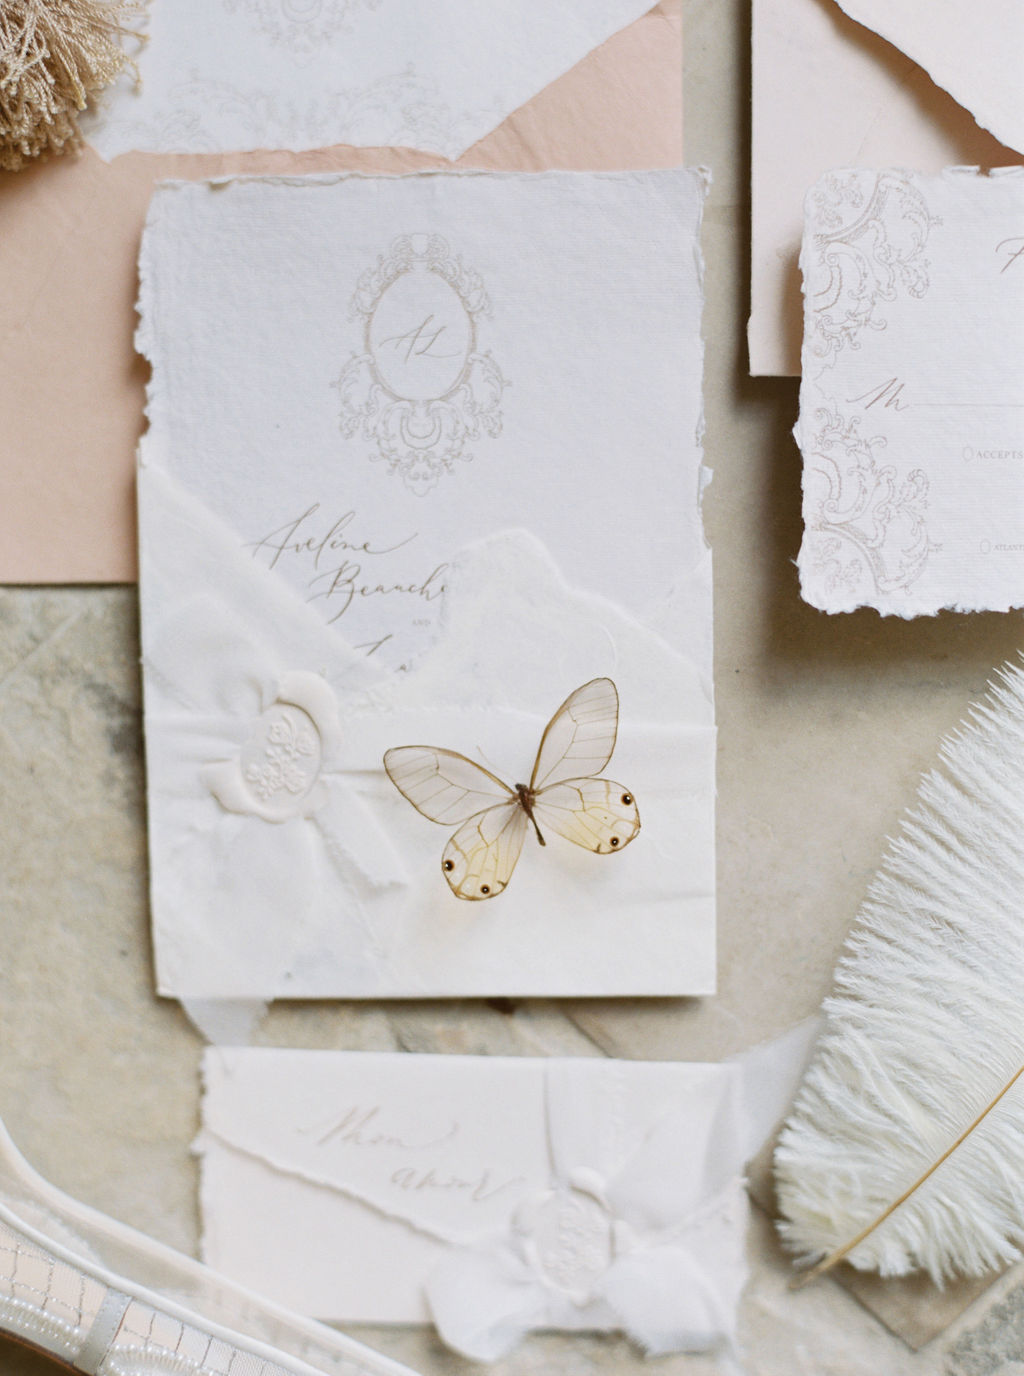 travellur_photoshoot__elegance_Jardin_de_Chateau_de_Villette_wedding_stationary_butterfly.jpg